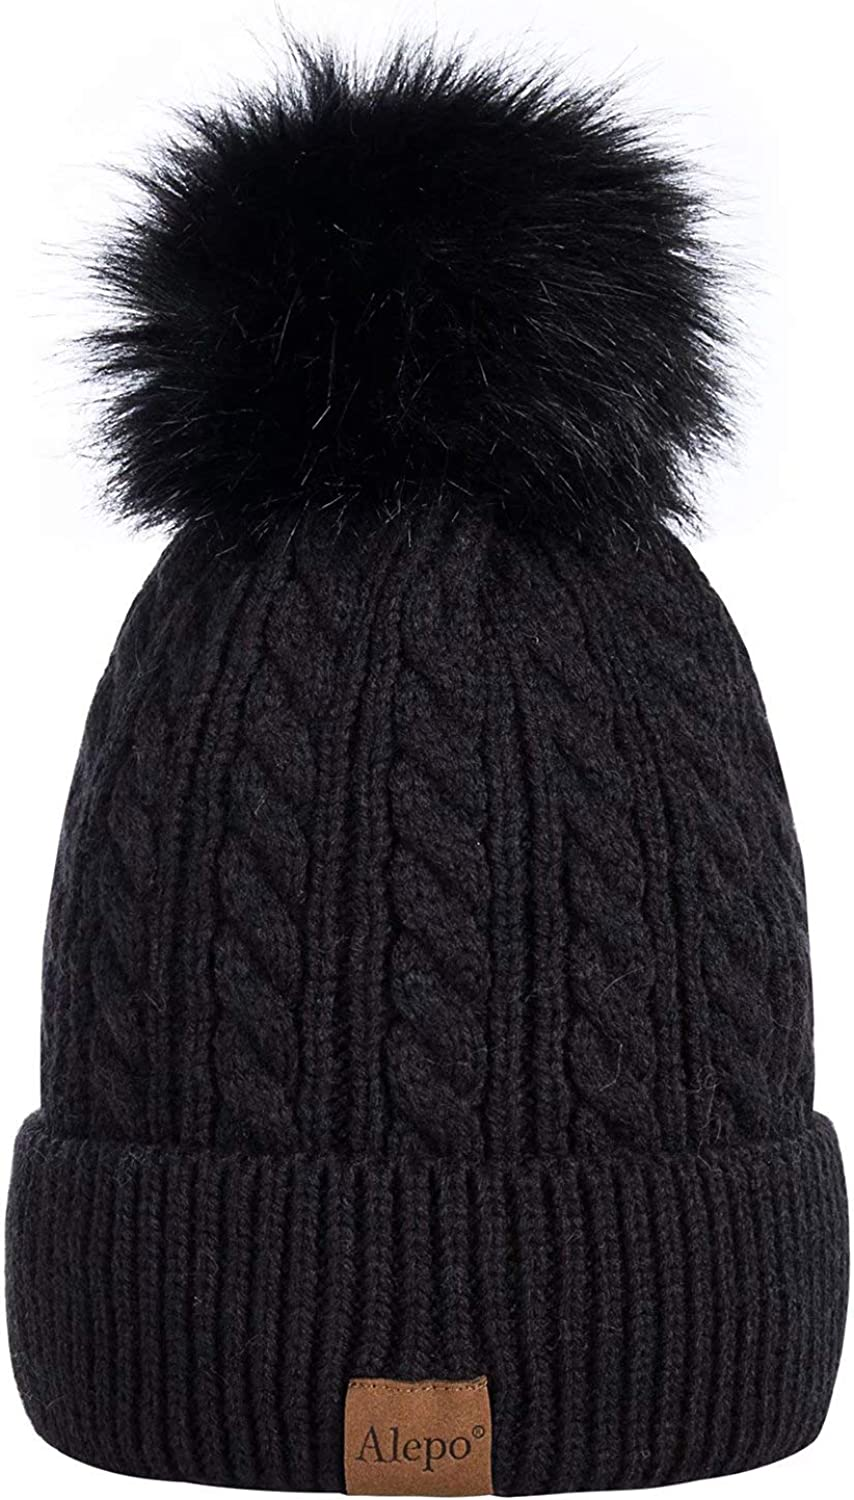 Alepo Womens Winter Beanie Hat Warm Fleece Lined Knitted Soft Ski Cuff Cap with Pom Pom